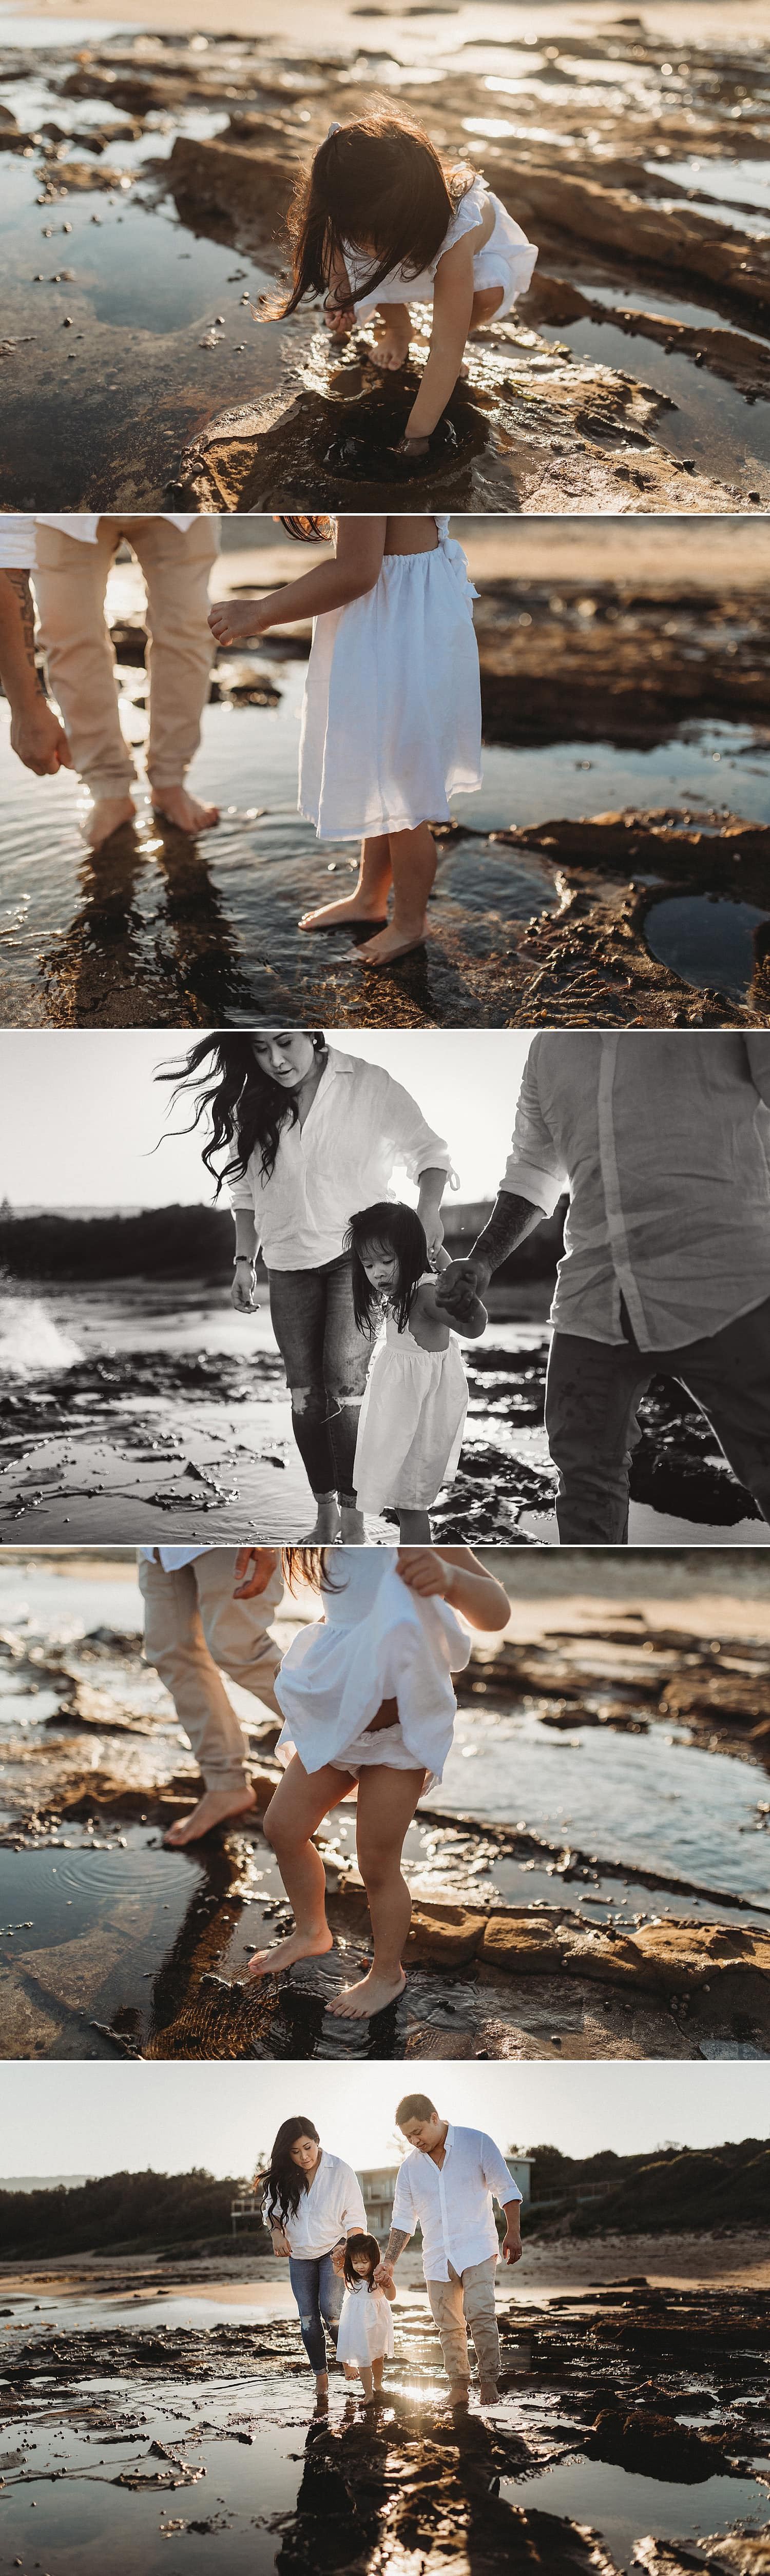 Sutherland-Shire-Lifestyle-Family-Photography-Sydney-Beach-Photography